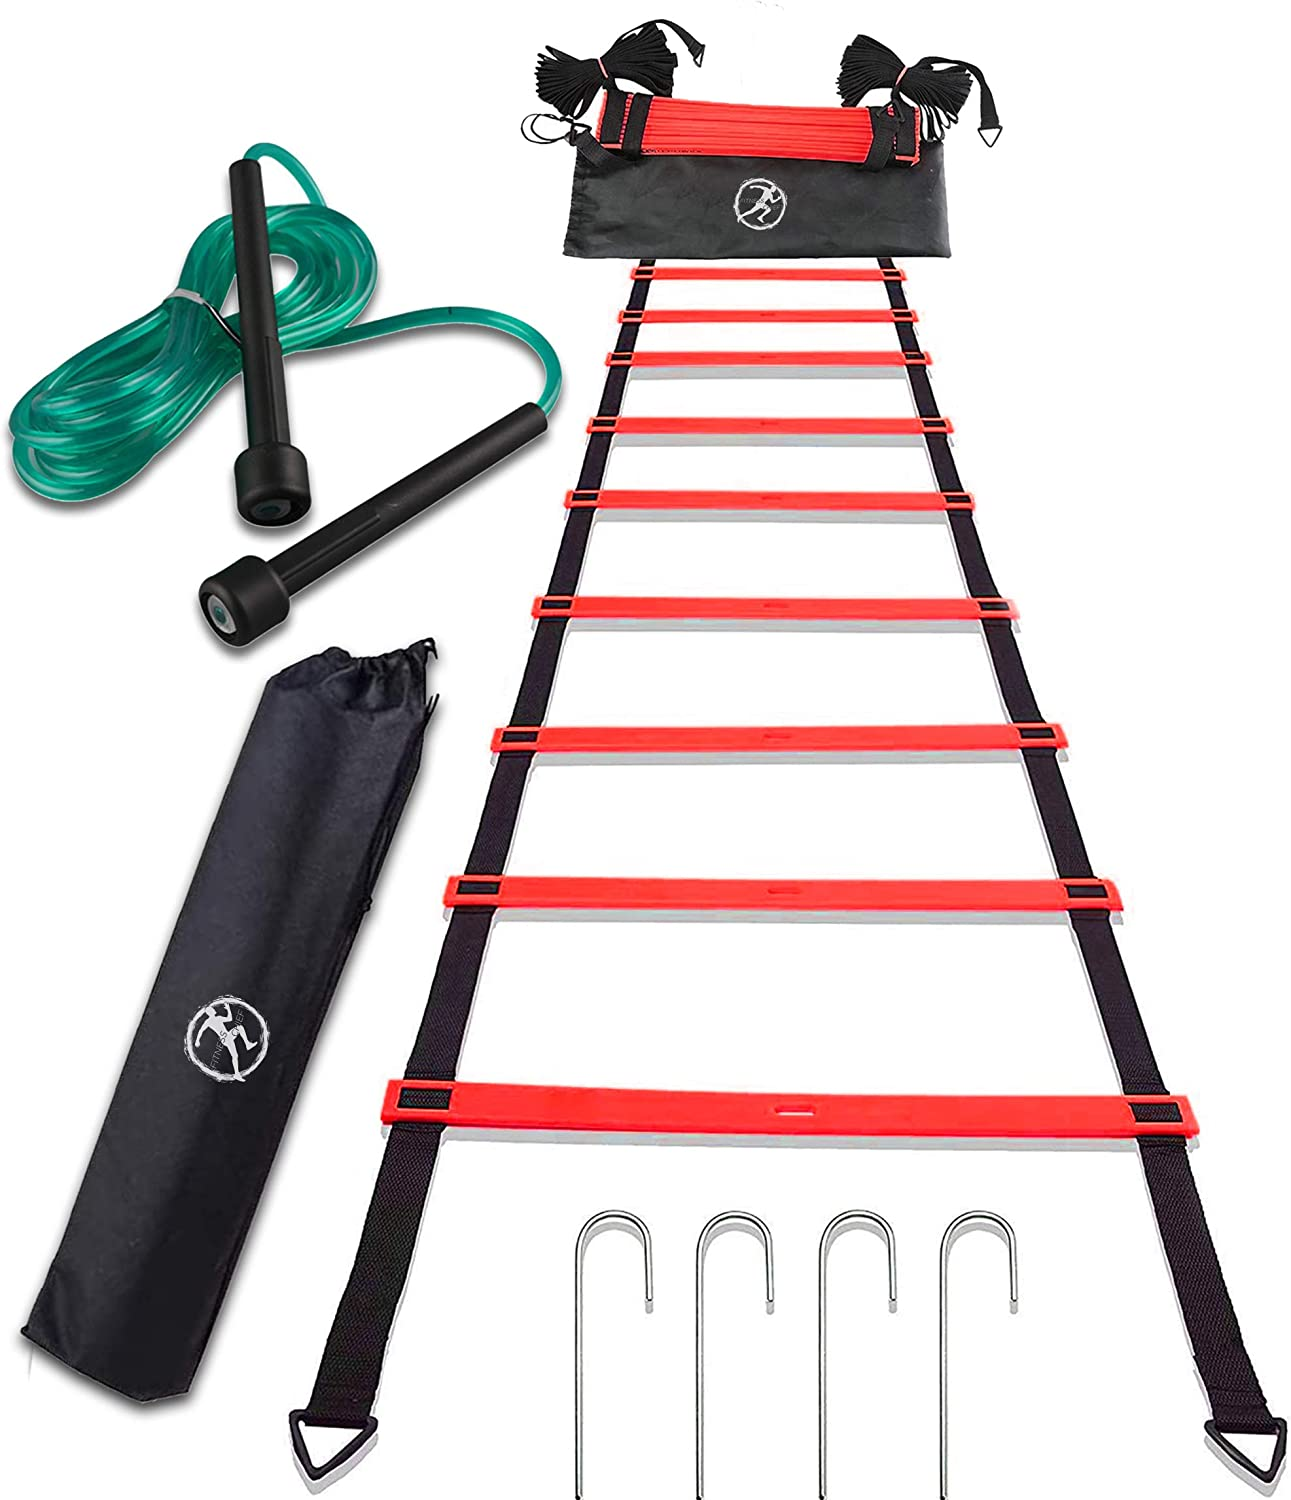 FitnessCHIEF Sport Agility Ladder Set with Jump Rope Equipment Bag for Speed Training,Exercise at Home or Gym or Workout for Kids or Professional